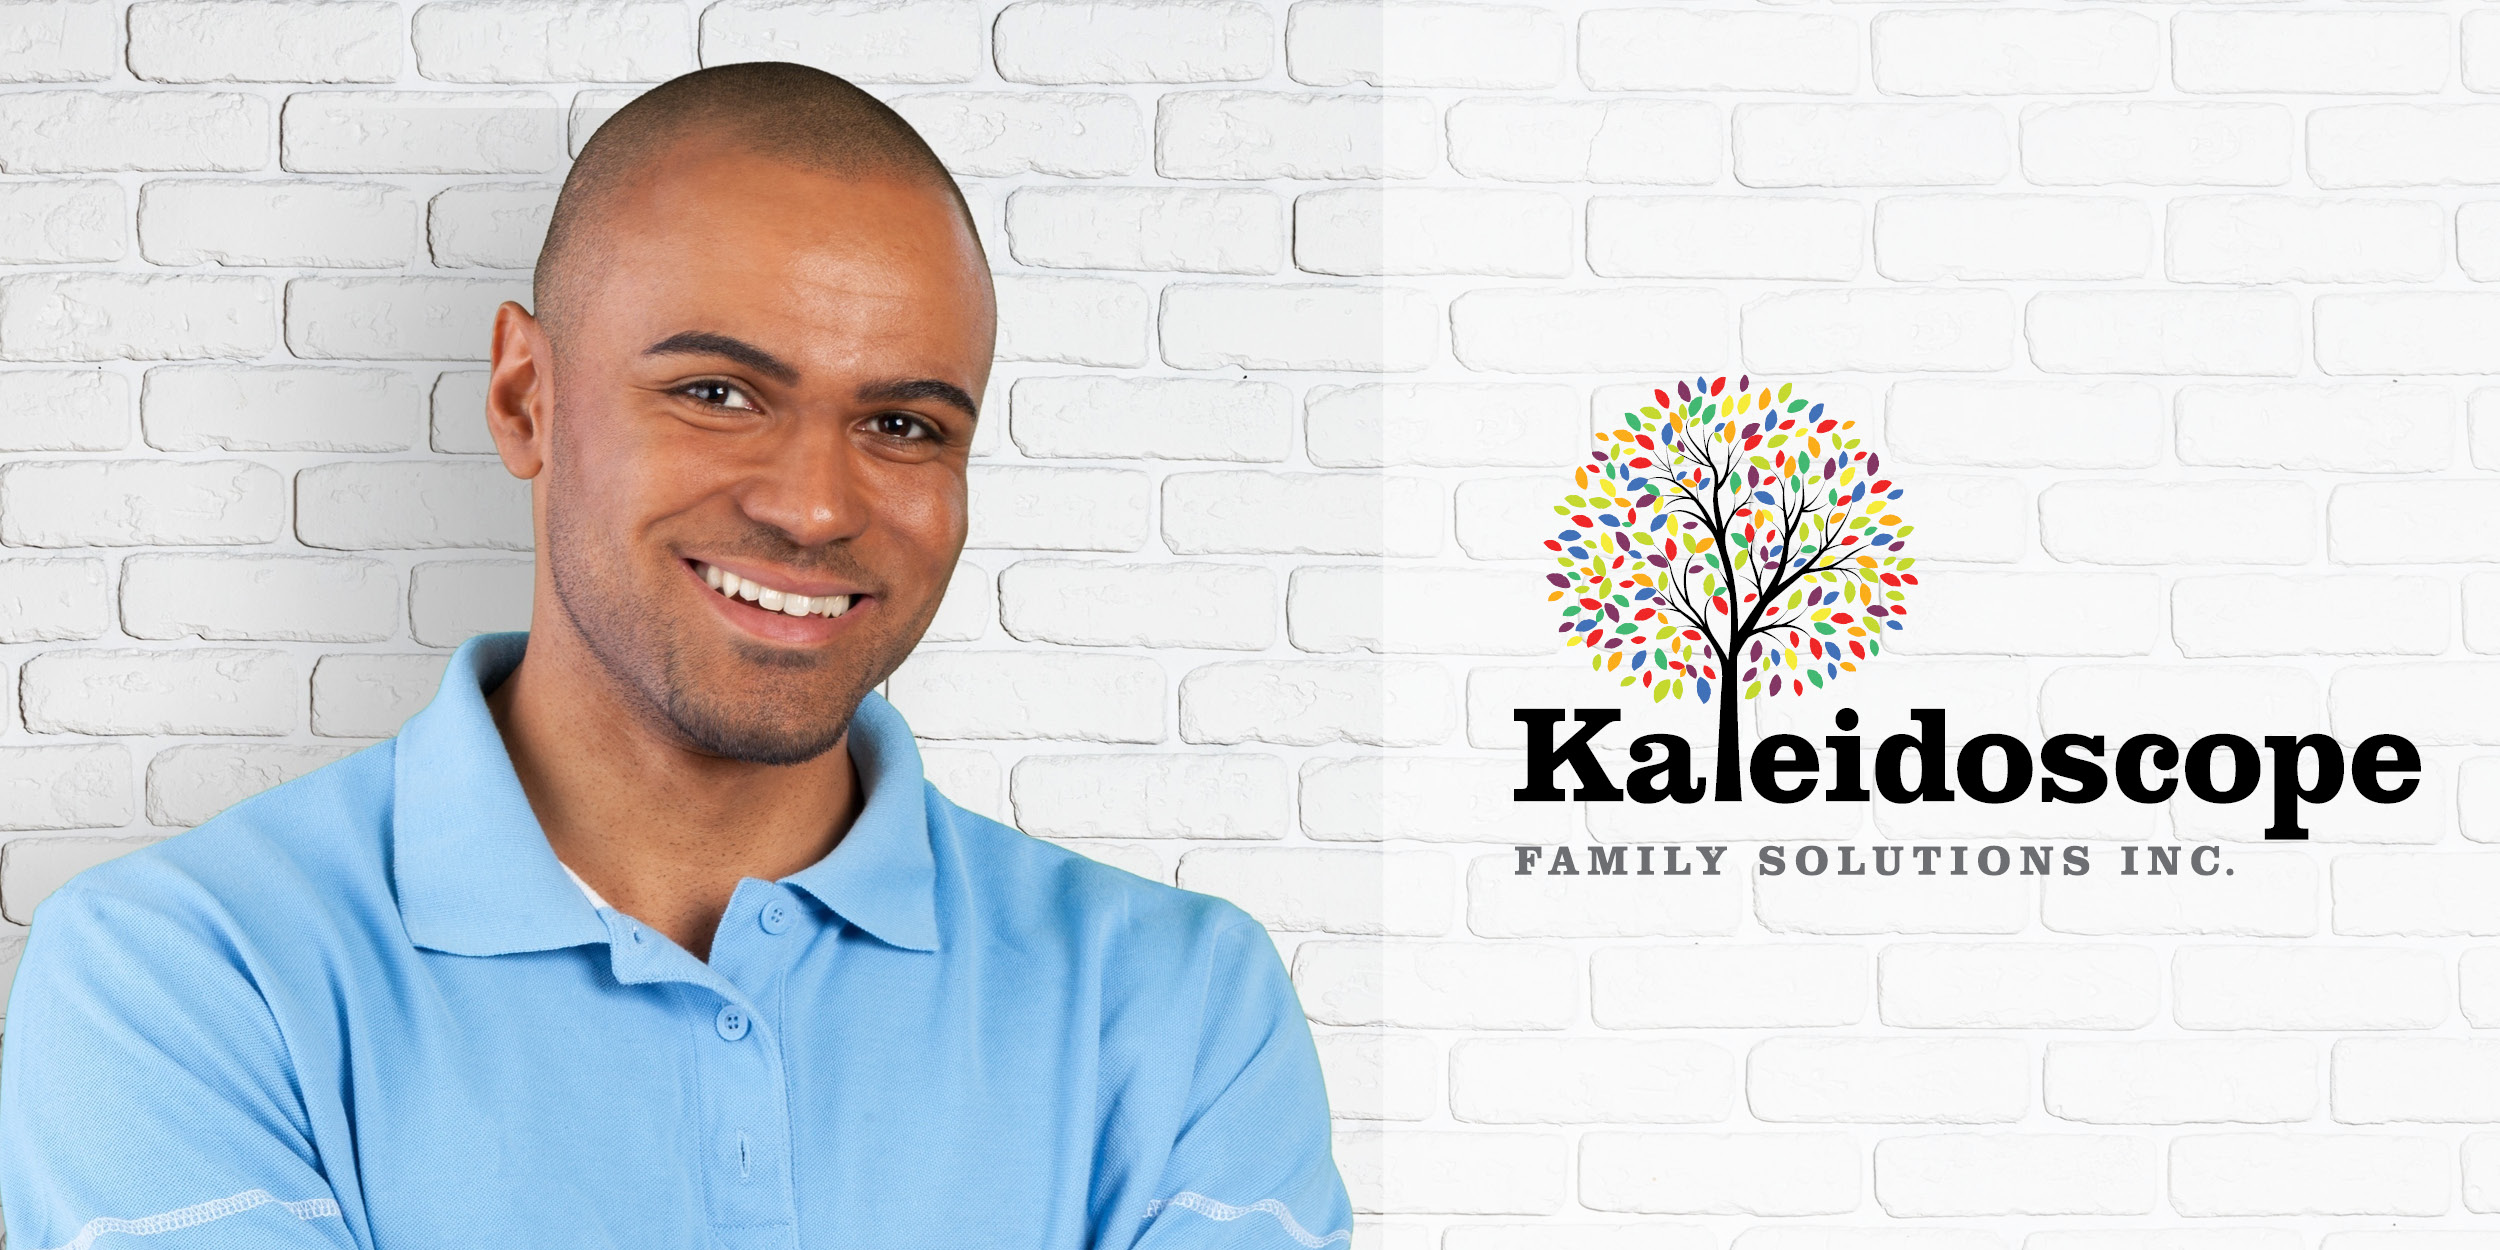 Kaleidoscope Family Solutions Inc - Program Director banner image